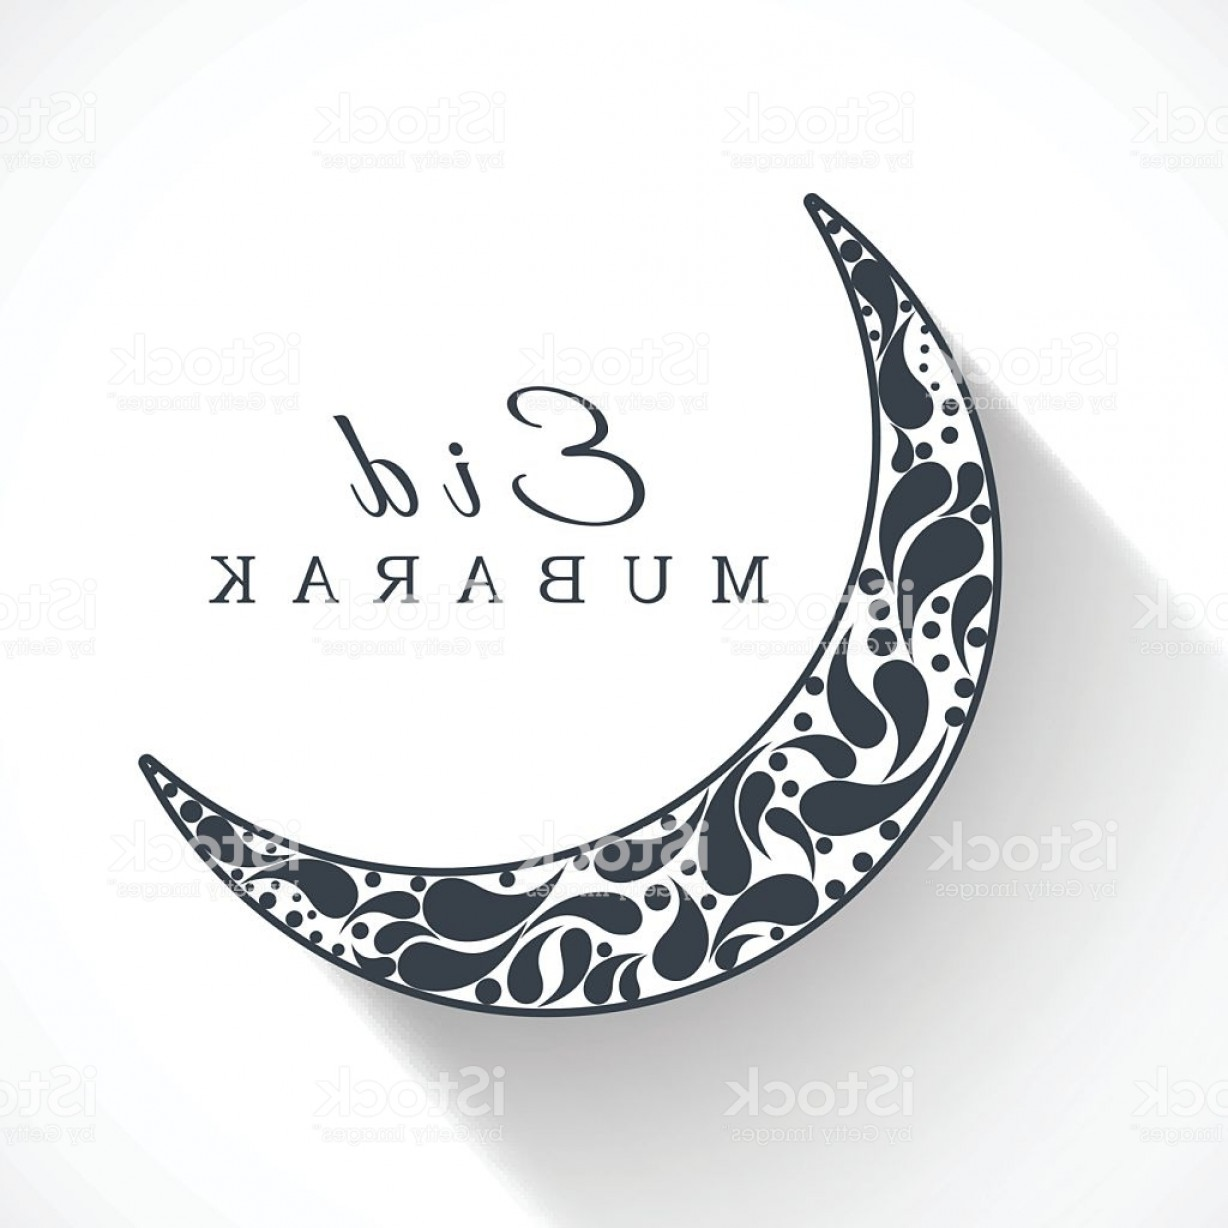 Cresent Moon Vector: Stylish Crescent Moon Decorated With Blue Floral Design Gm